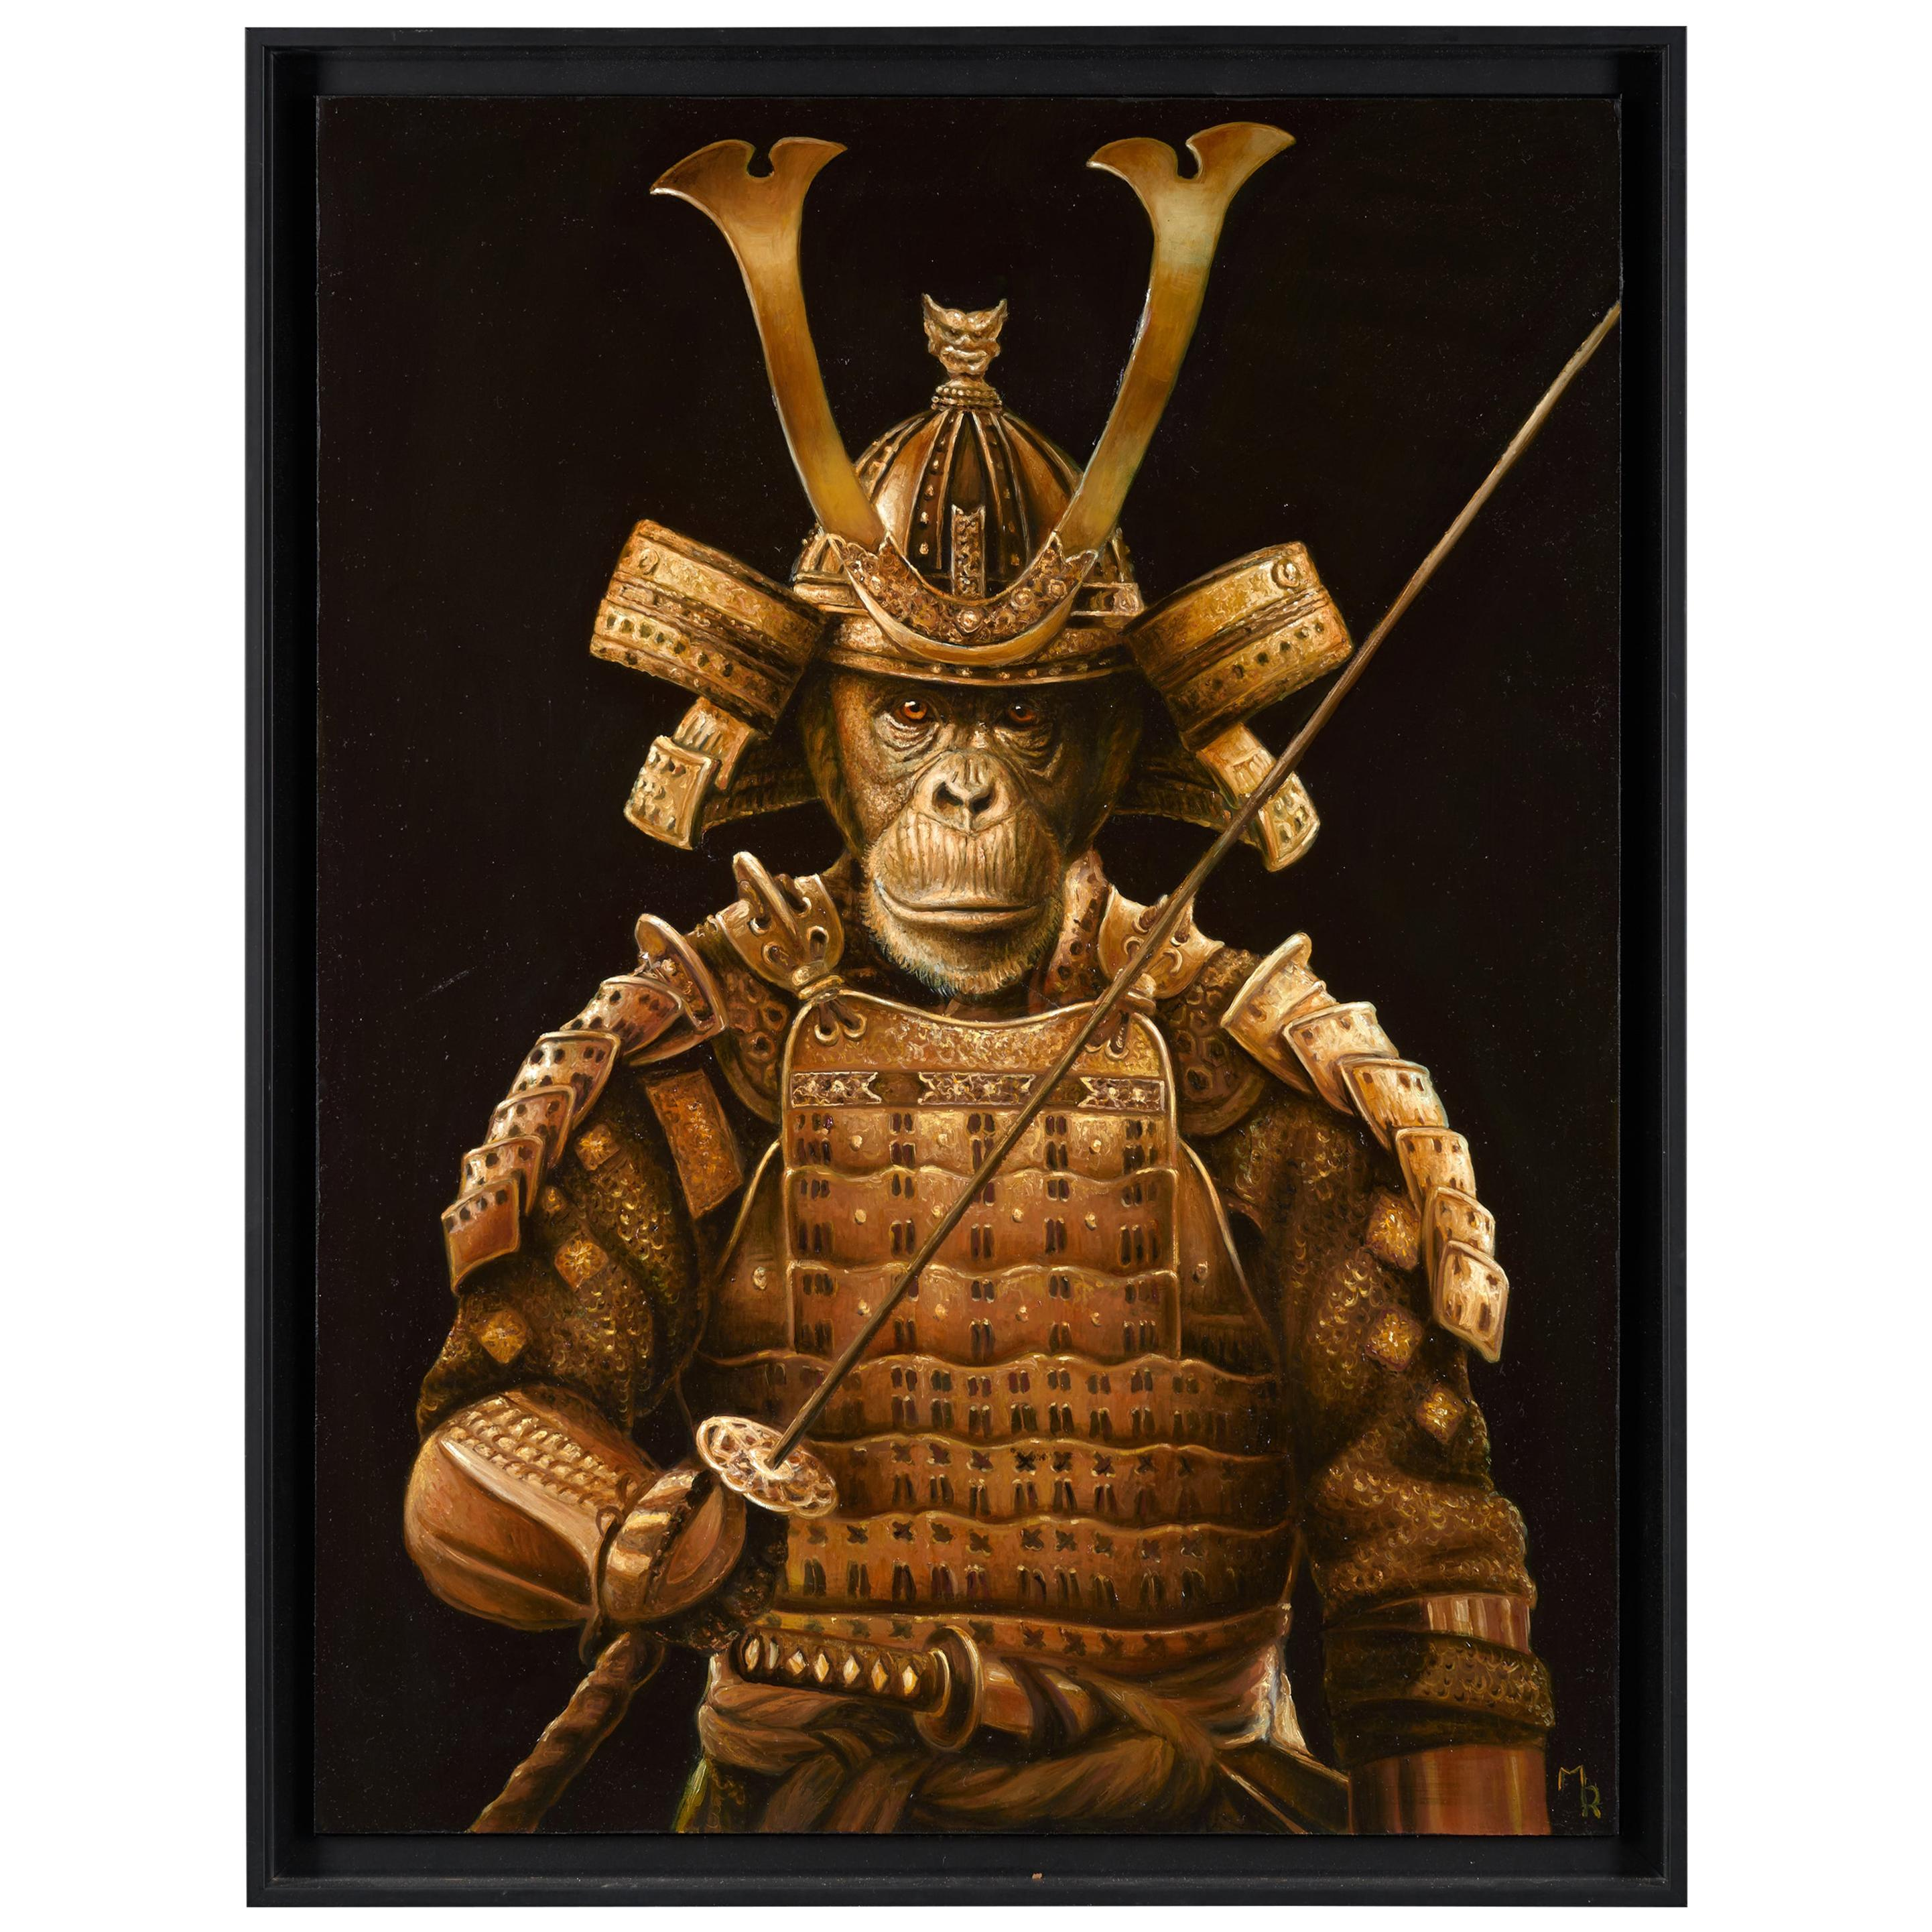 Marc Le Rest (1970-), Samurai Tokugawa, Oil on Canvas, Framed, Signed, Dated